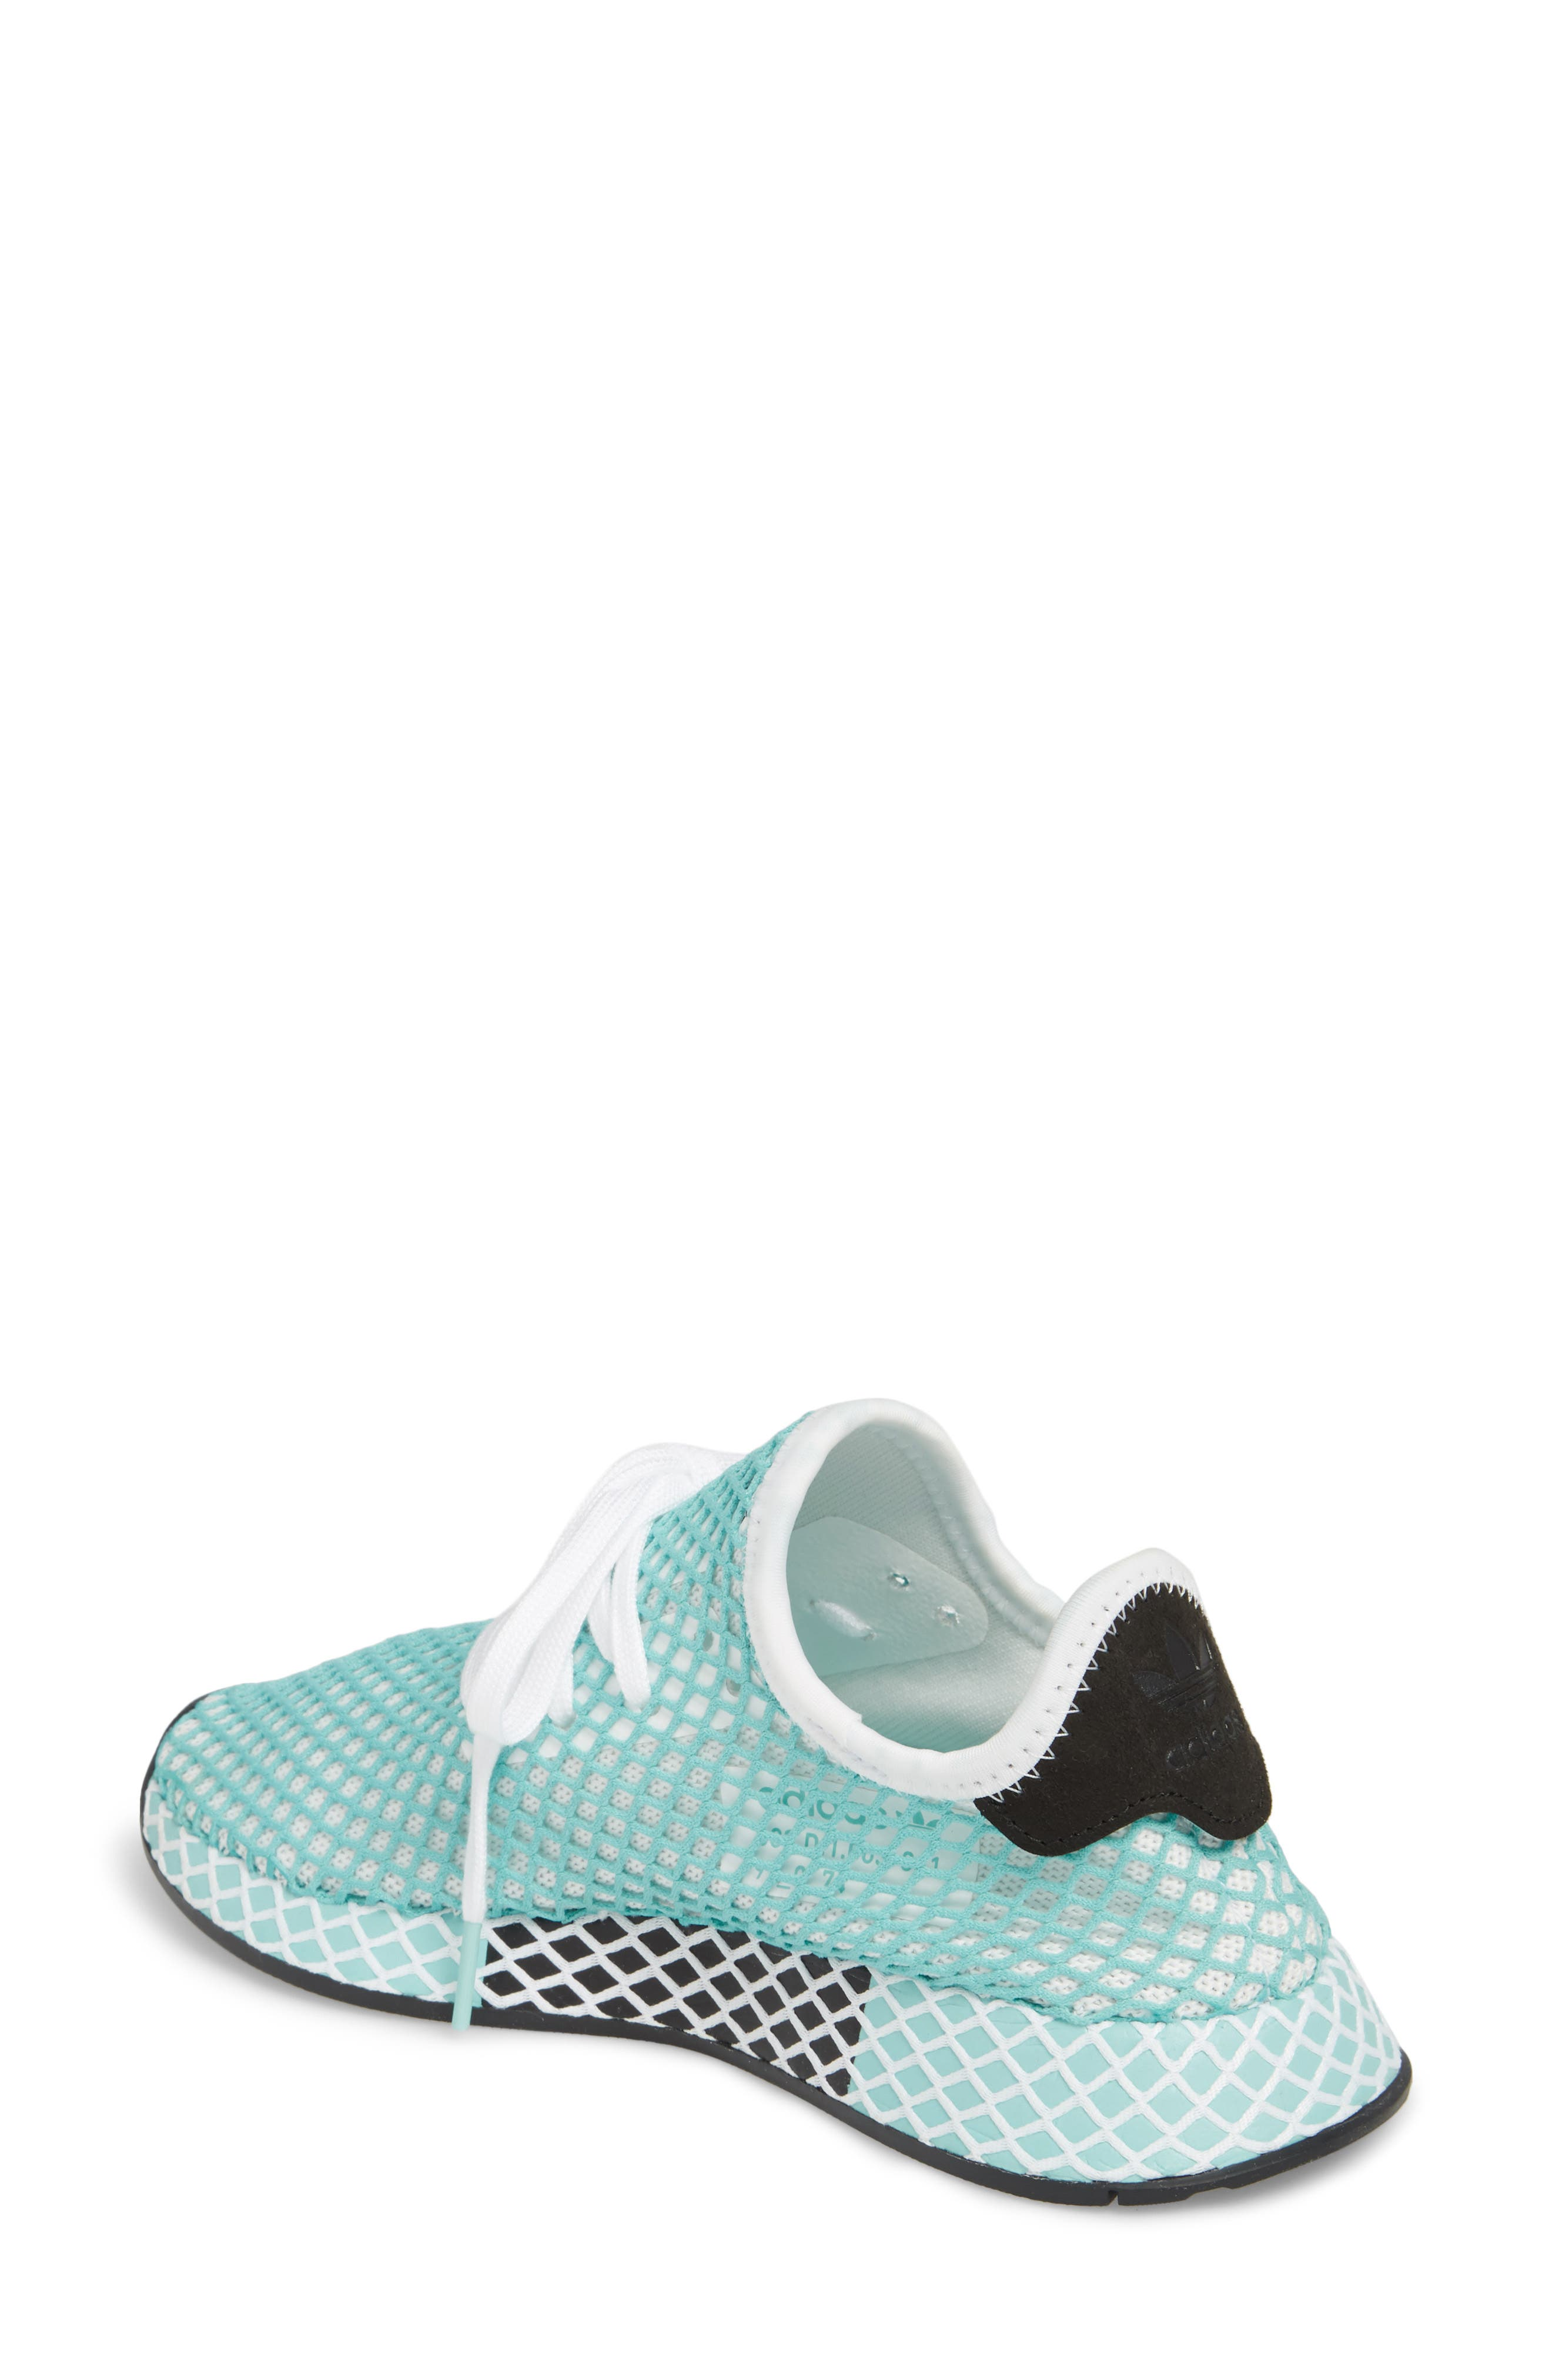 Deerupt x Parley Runner Sneaker,                             Alternate thumbnail 2, color,                             White/ White/ Blue Spirit